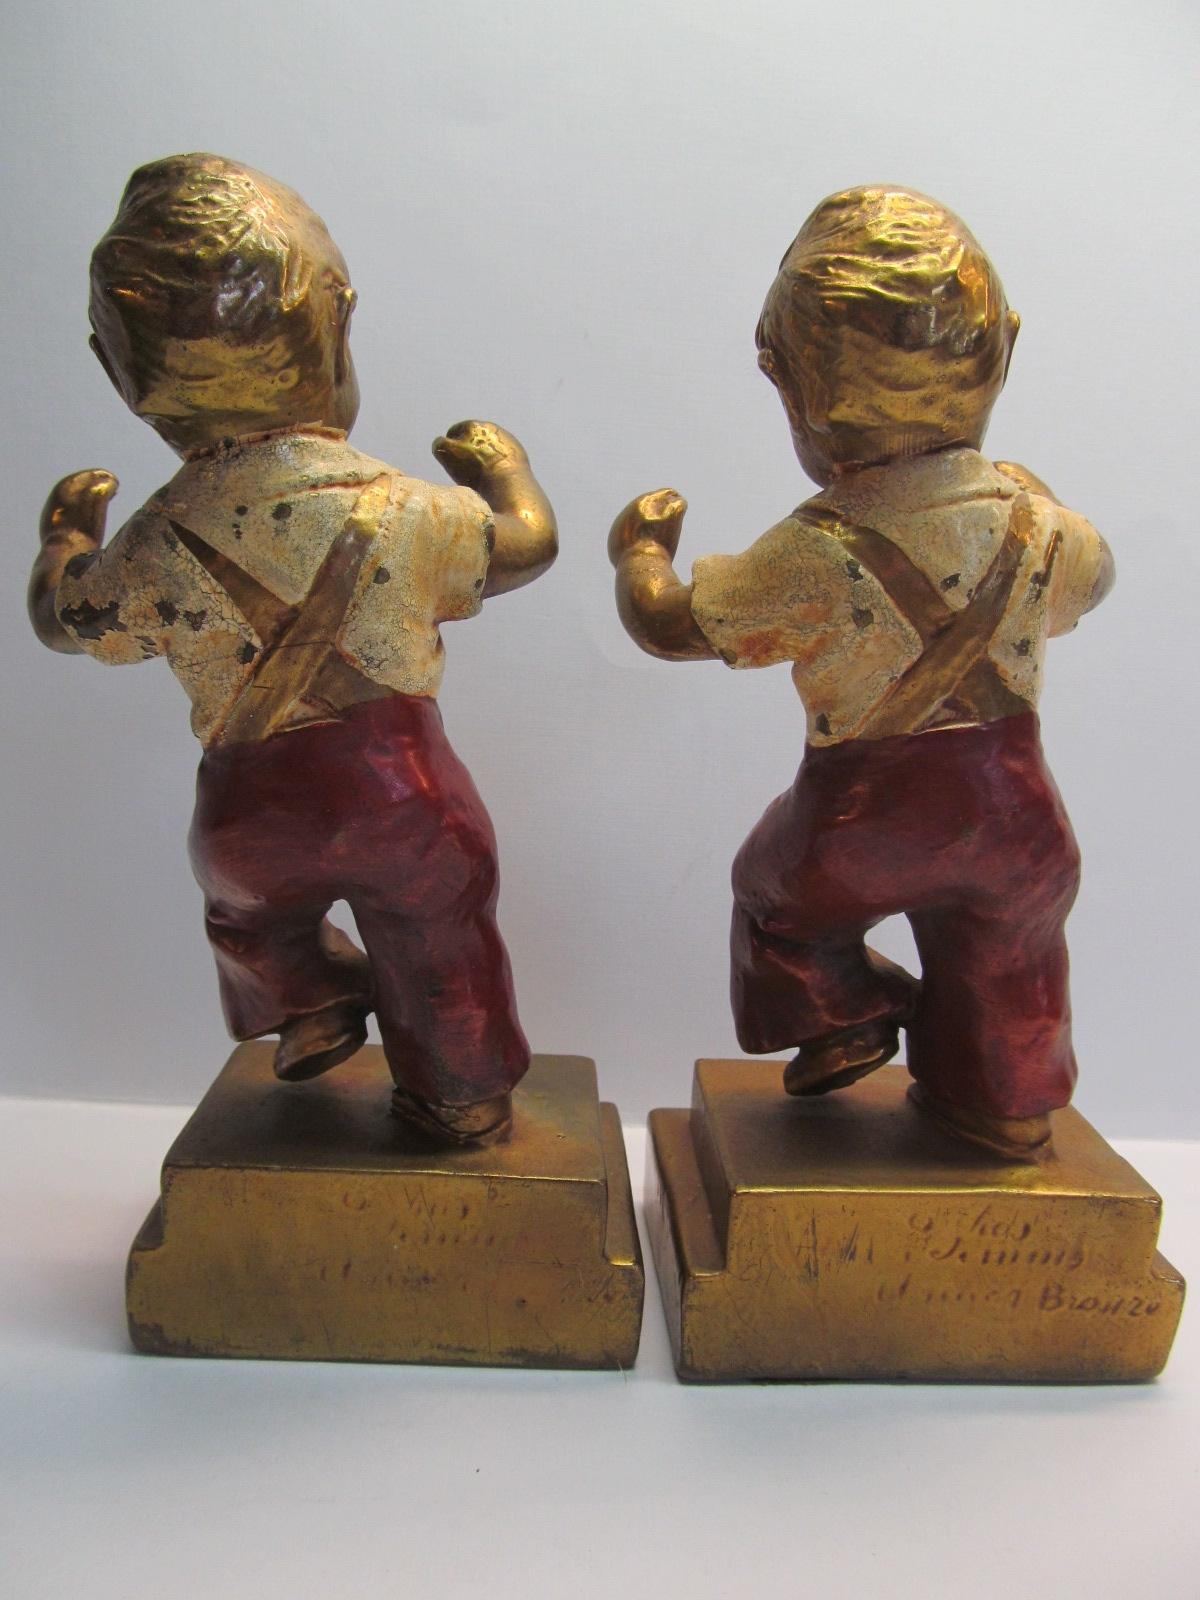 Charles jennings bookends boys jumping armor bronze 1920 c from artgate on ruby lane - Armor bronze bookends ...